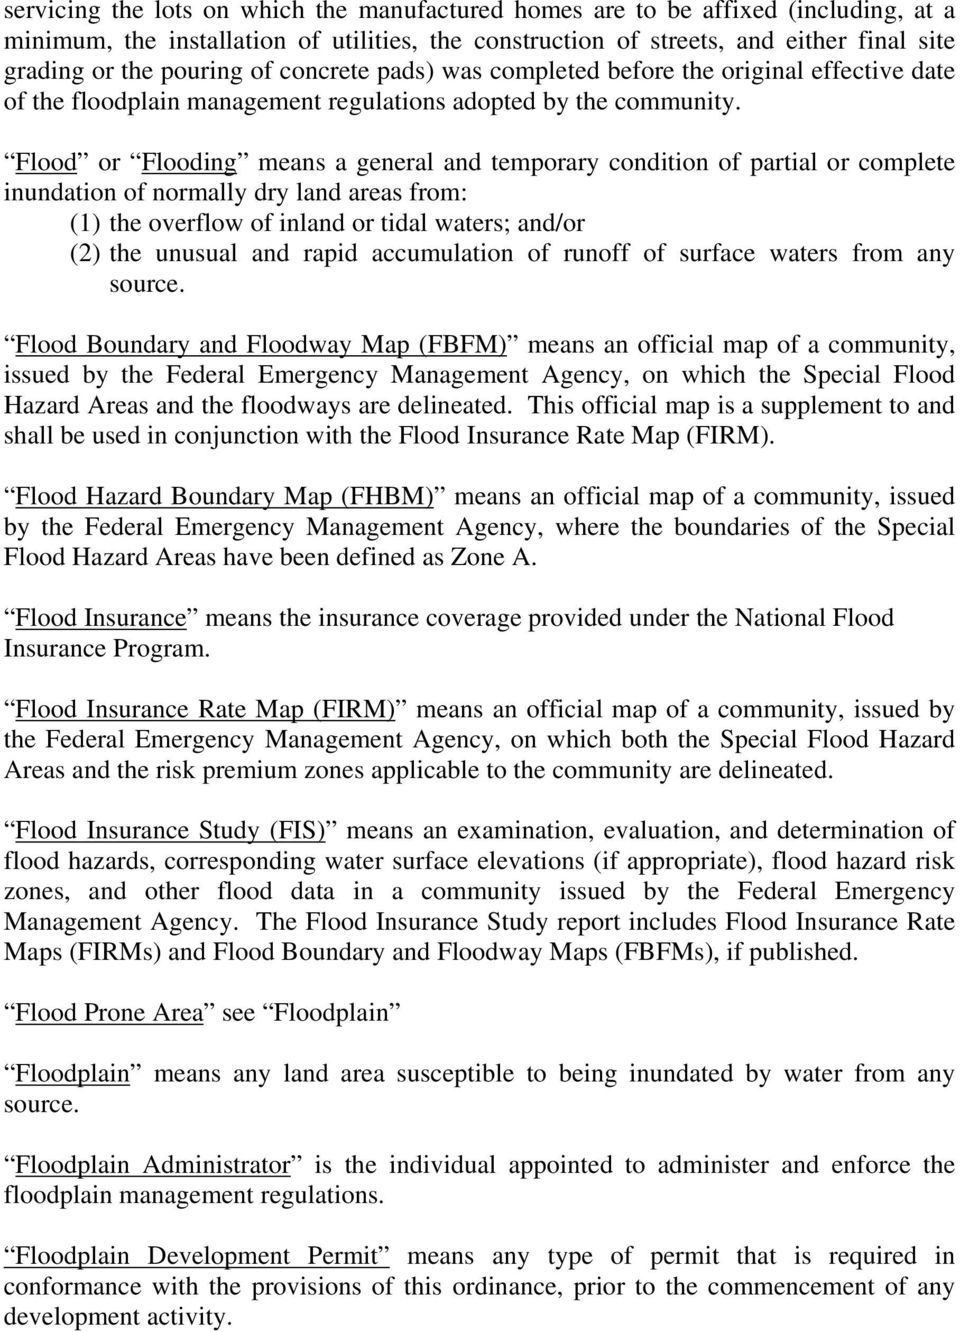 Flood or Flooding means a general and temporary condition of partial or complete inundation of normally dry land areas from: (1) the overflow of inland or tidal waters; and/or (2) the unusual and